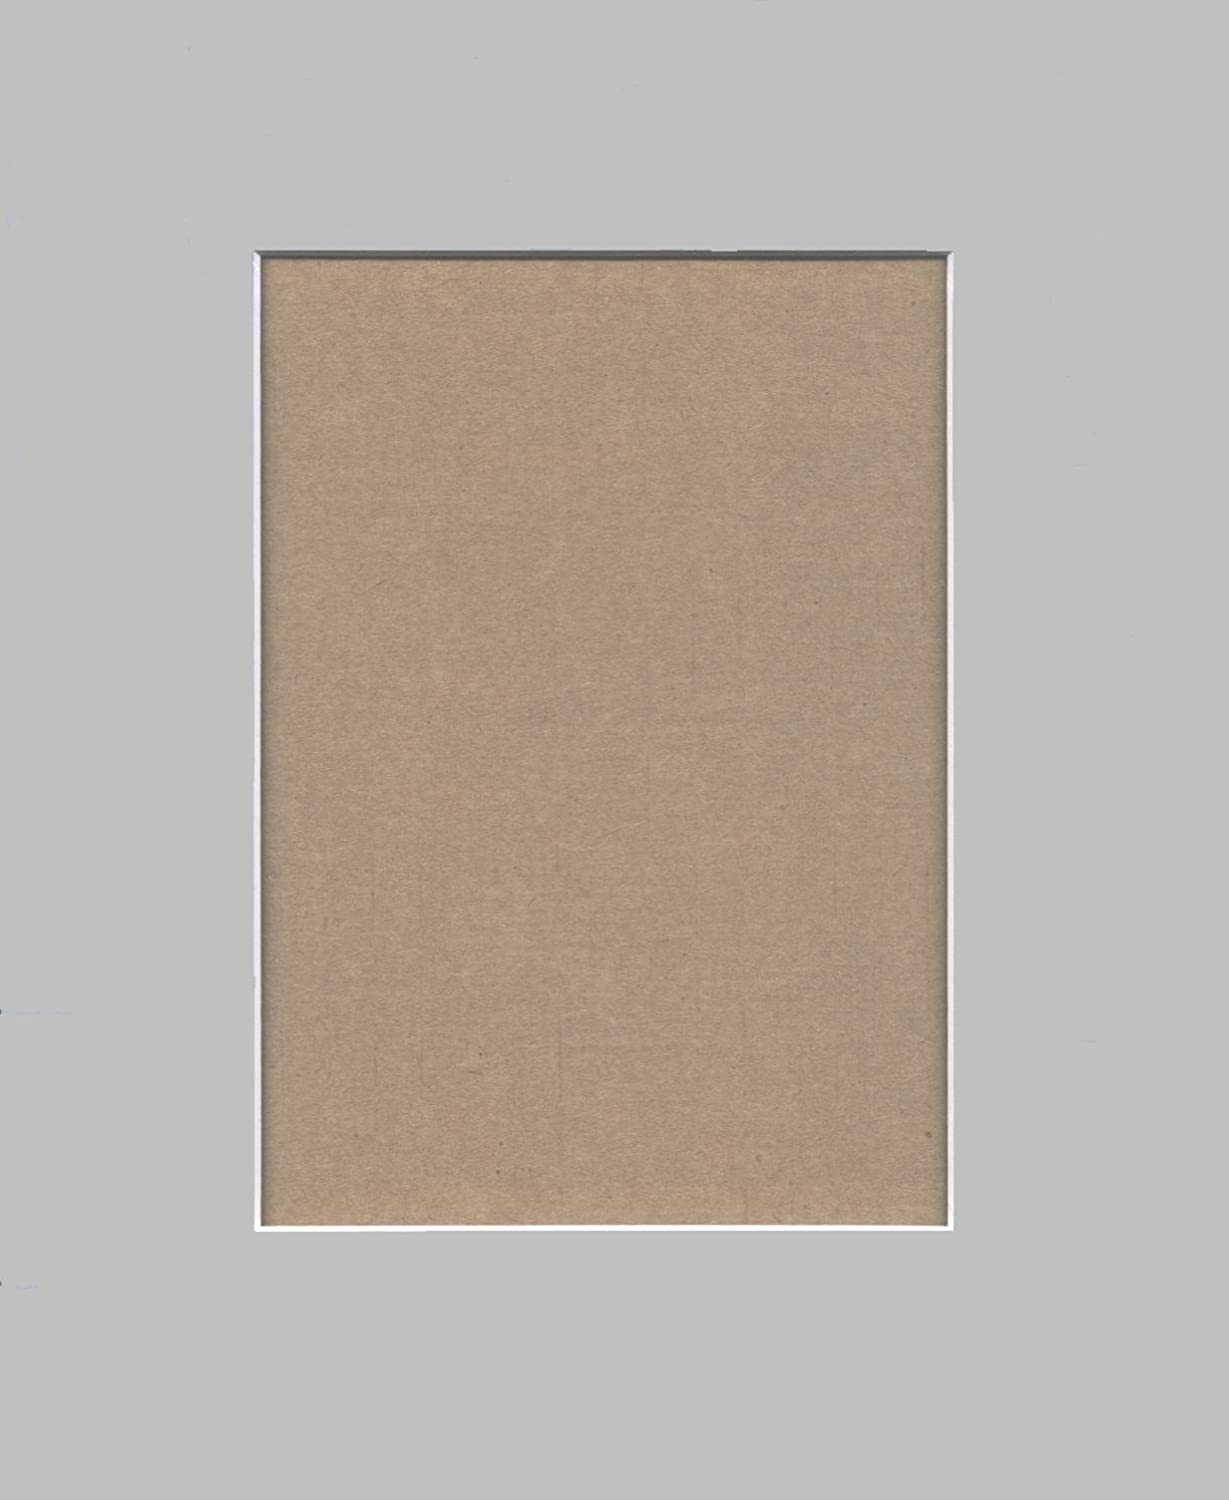 Pack of 5 11x14 Ocean Grey Picture Mats with White Core for 8x10 Pictures Bux1 Picture Matting